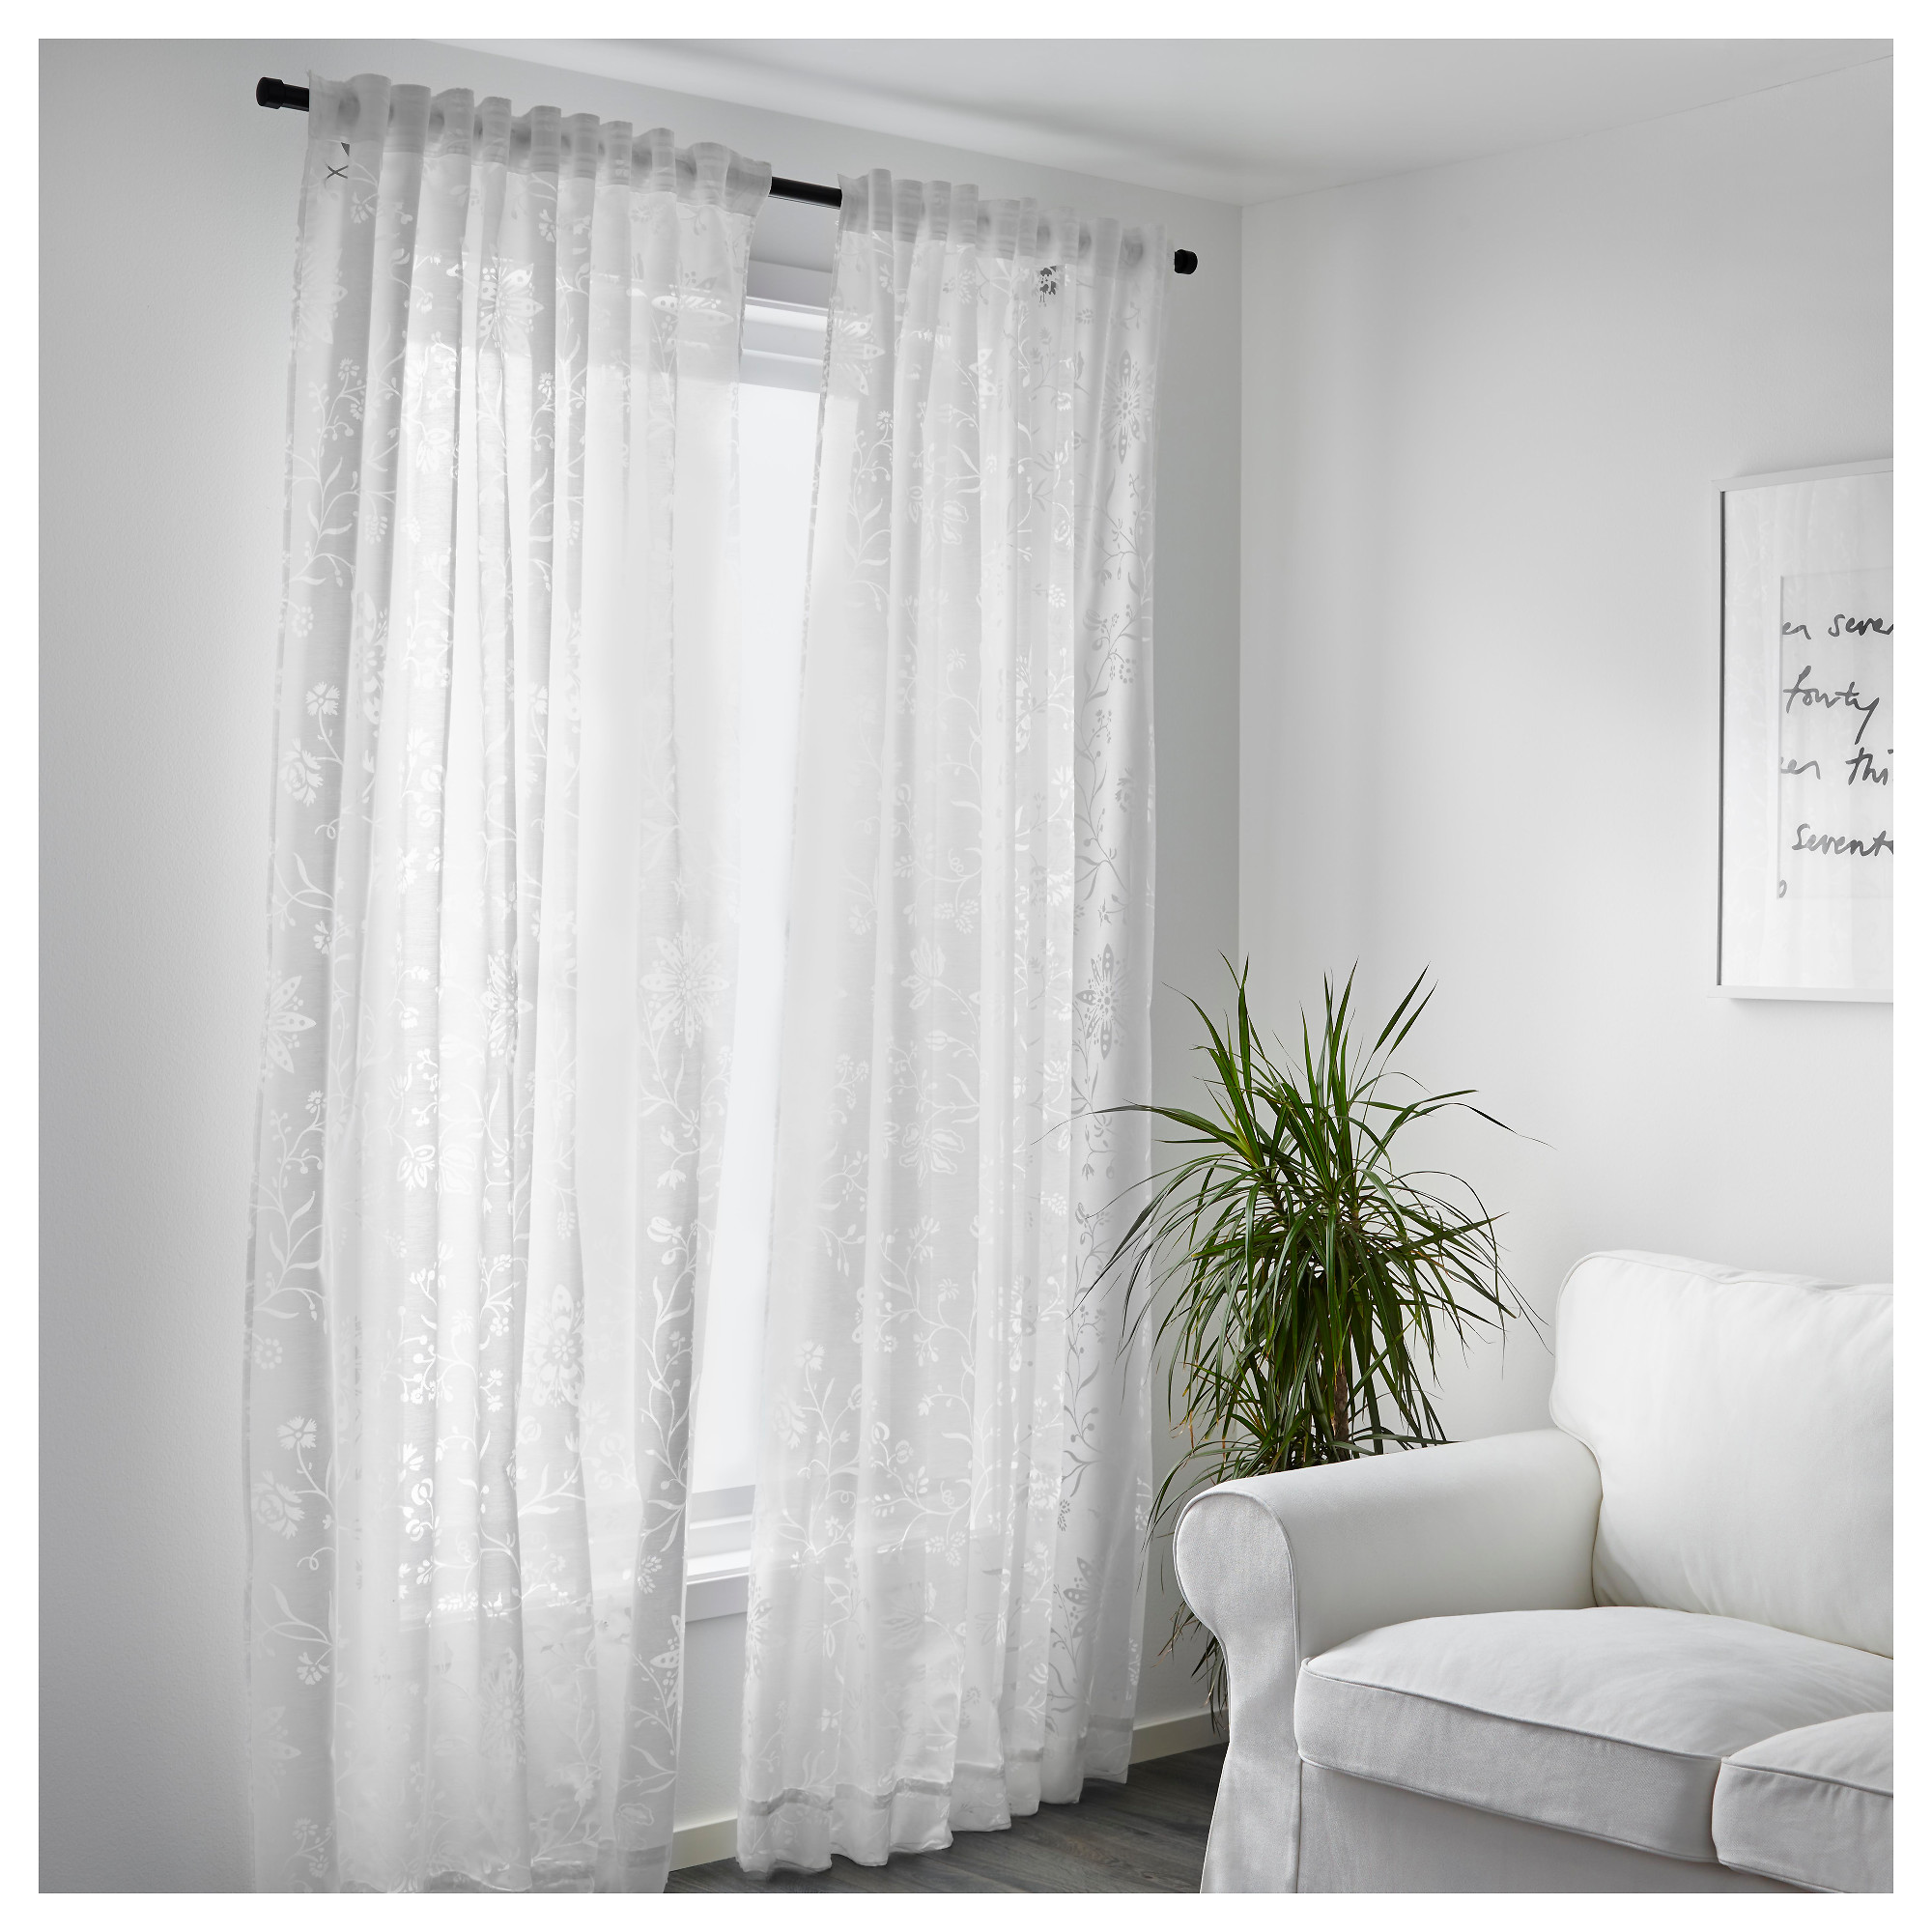 aurora grommet today panels panel patterned home tulle blackout match silver overstock curtain lace mix sheer shipping garden and pair piece free curtains product